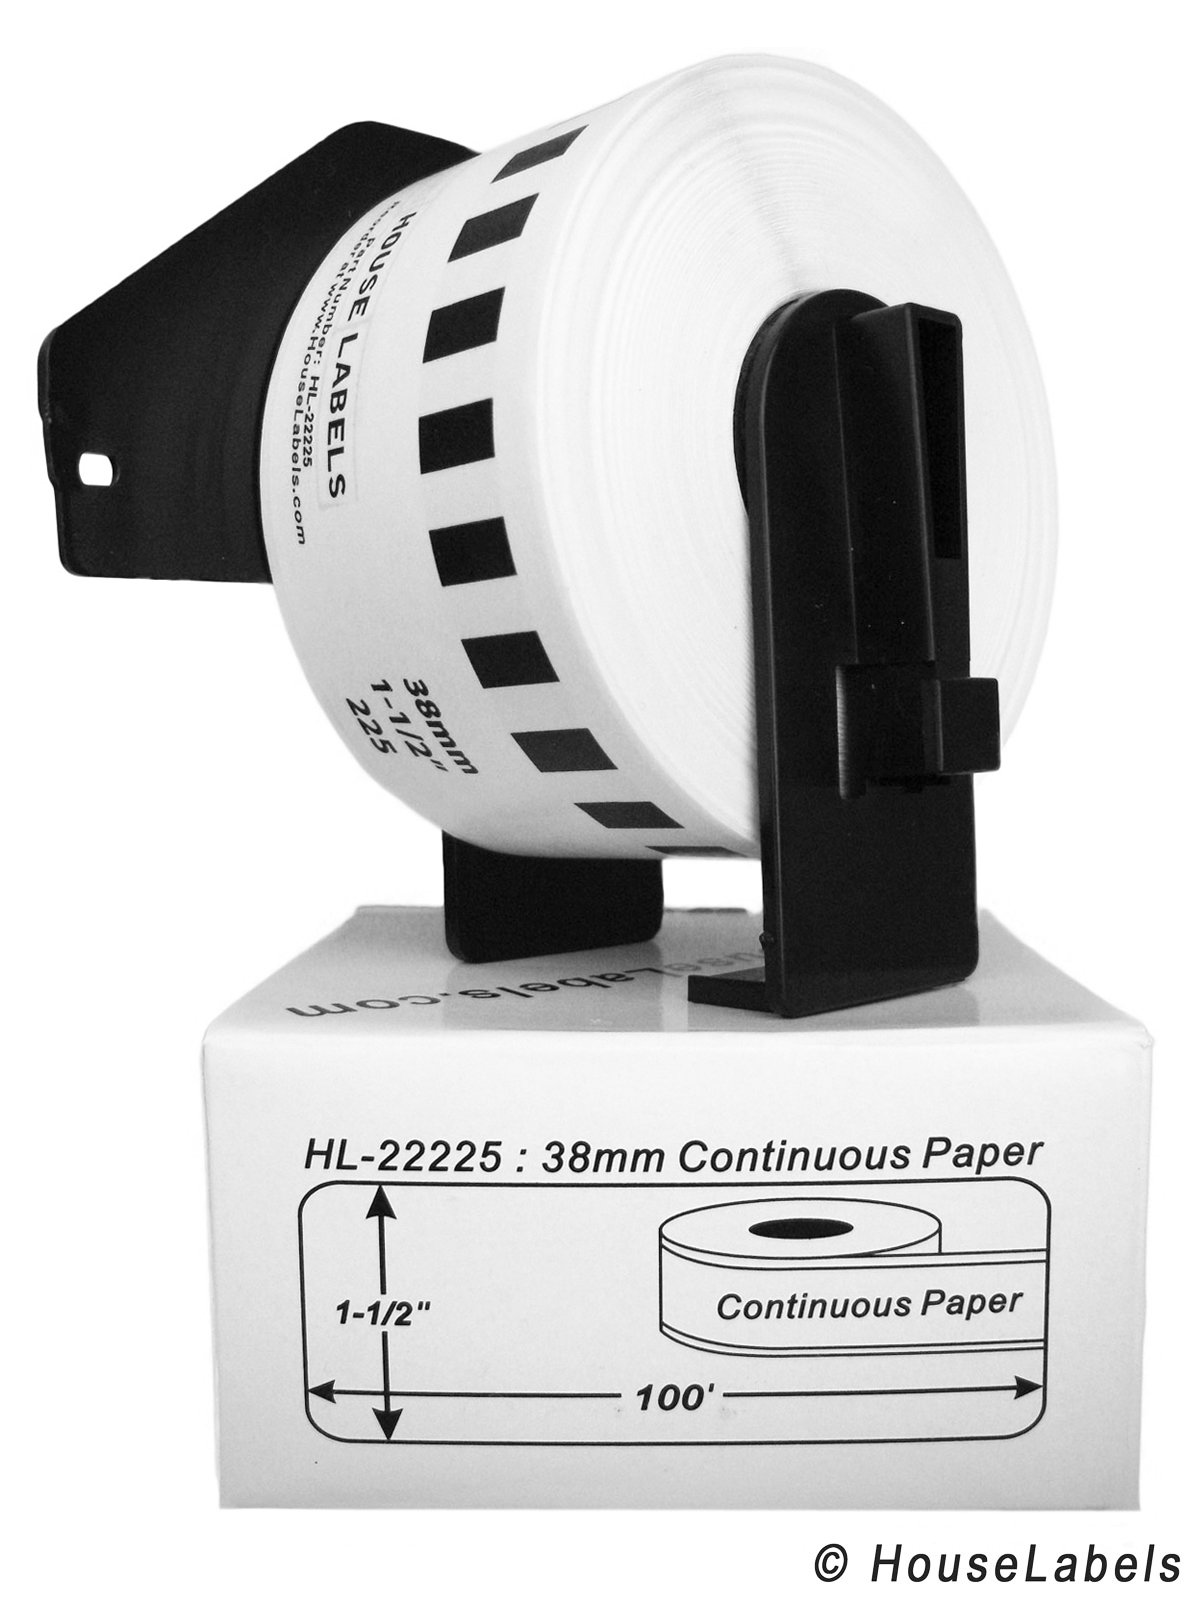 9 Rolls; Continuous Paper, BROTHER-Compatible DK-2225 Continuous Paper Labels with ONE (1) reusable cartridge (1-1/2'' x 100'; 38mm30.48m) -- BPA Free!